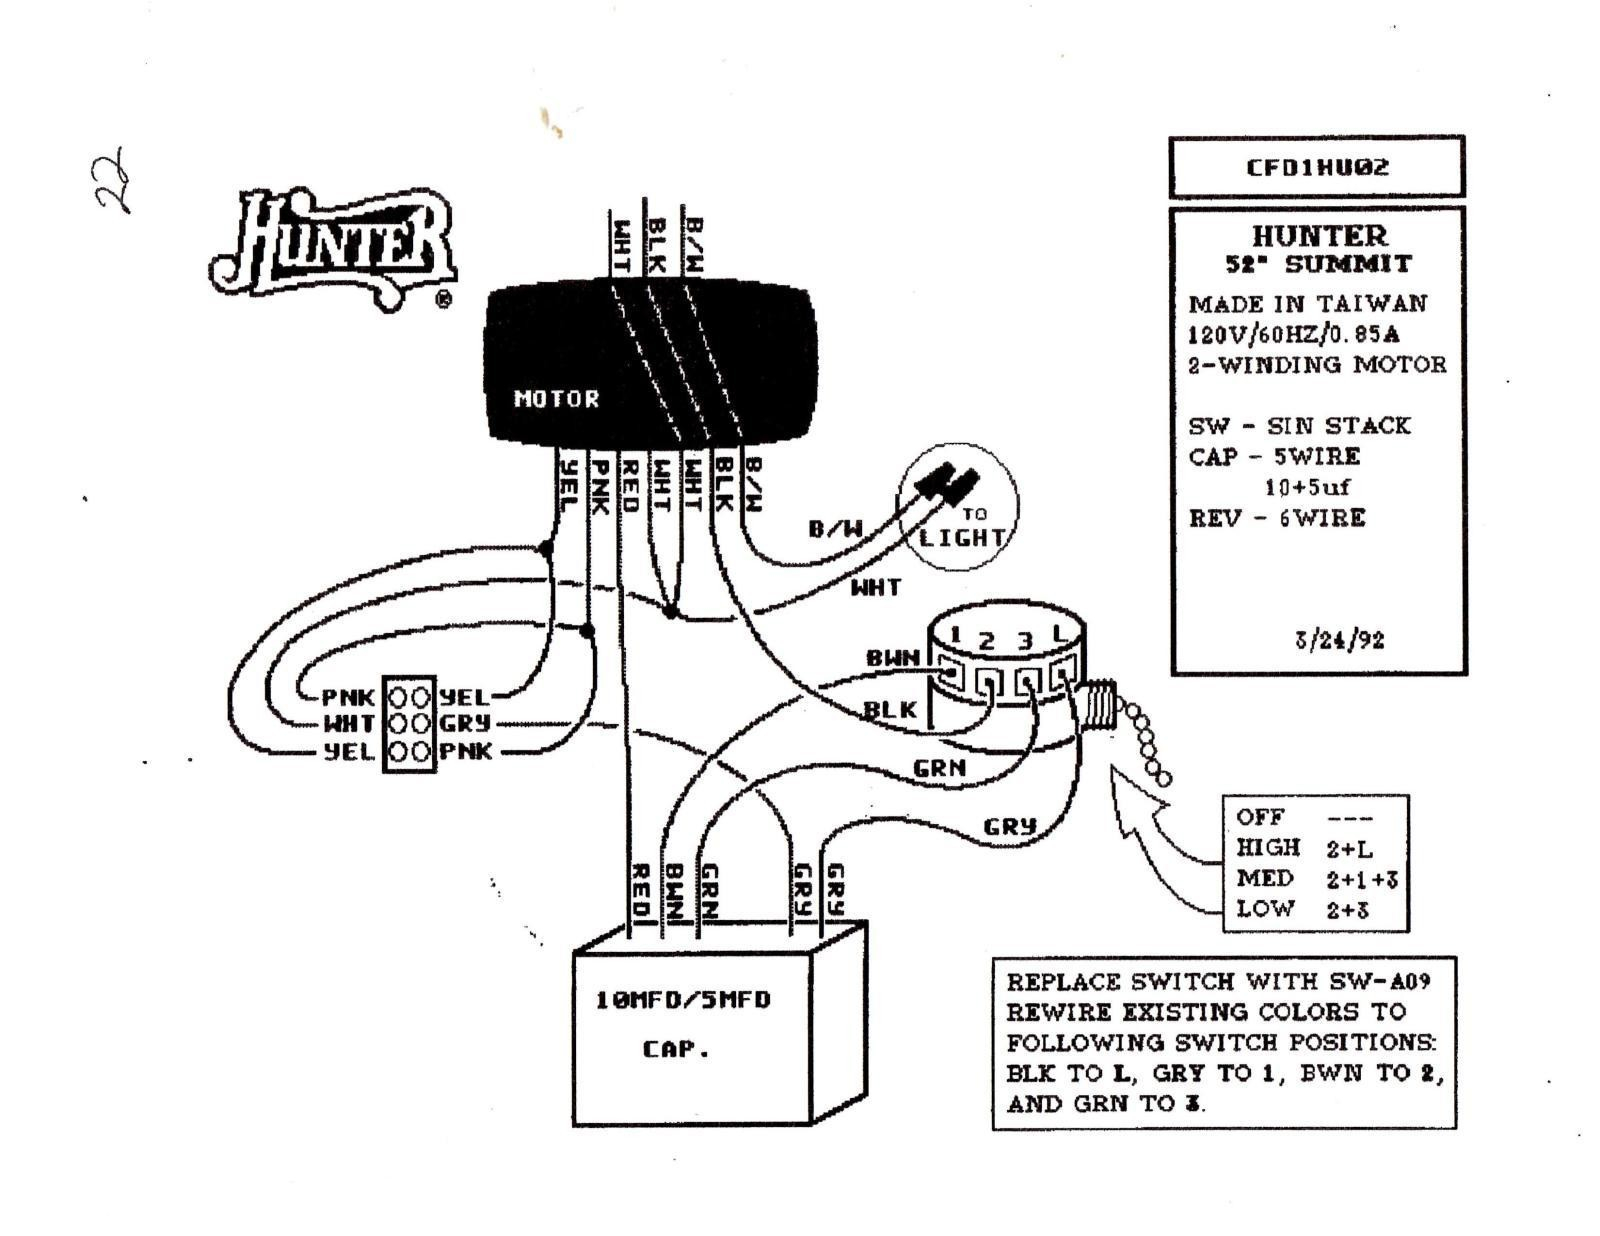 hampton bay ceiling fan capacitor wiring diagram Collection-Wiring Diagram Ceiling Fan with Regulator New Wiring Diagram Ceiling Fan with Capacitor Fresh Hampton 19-o